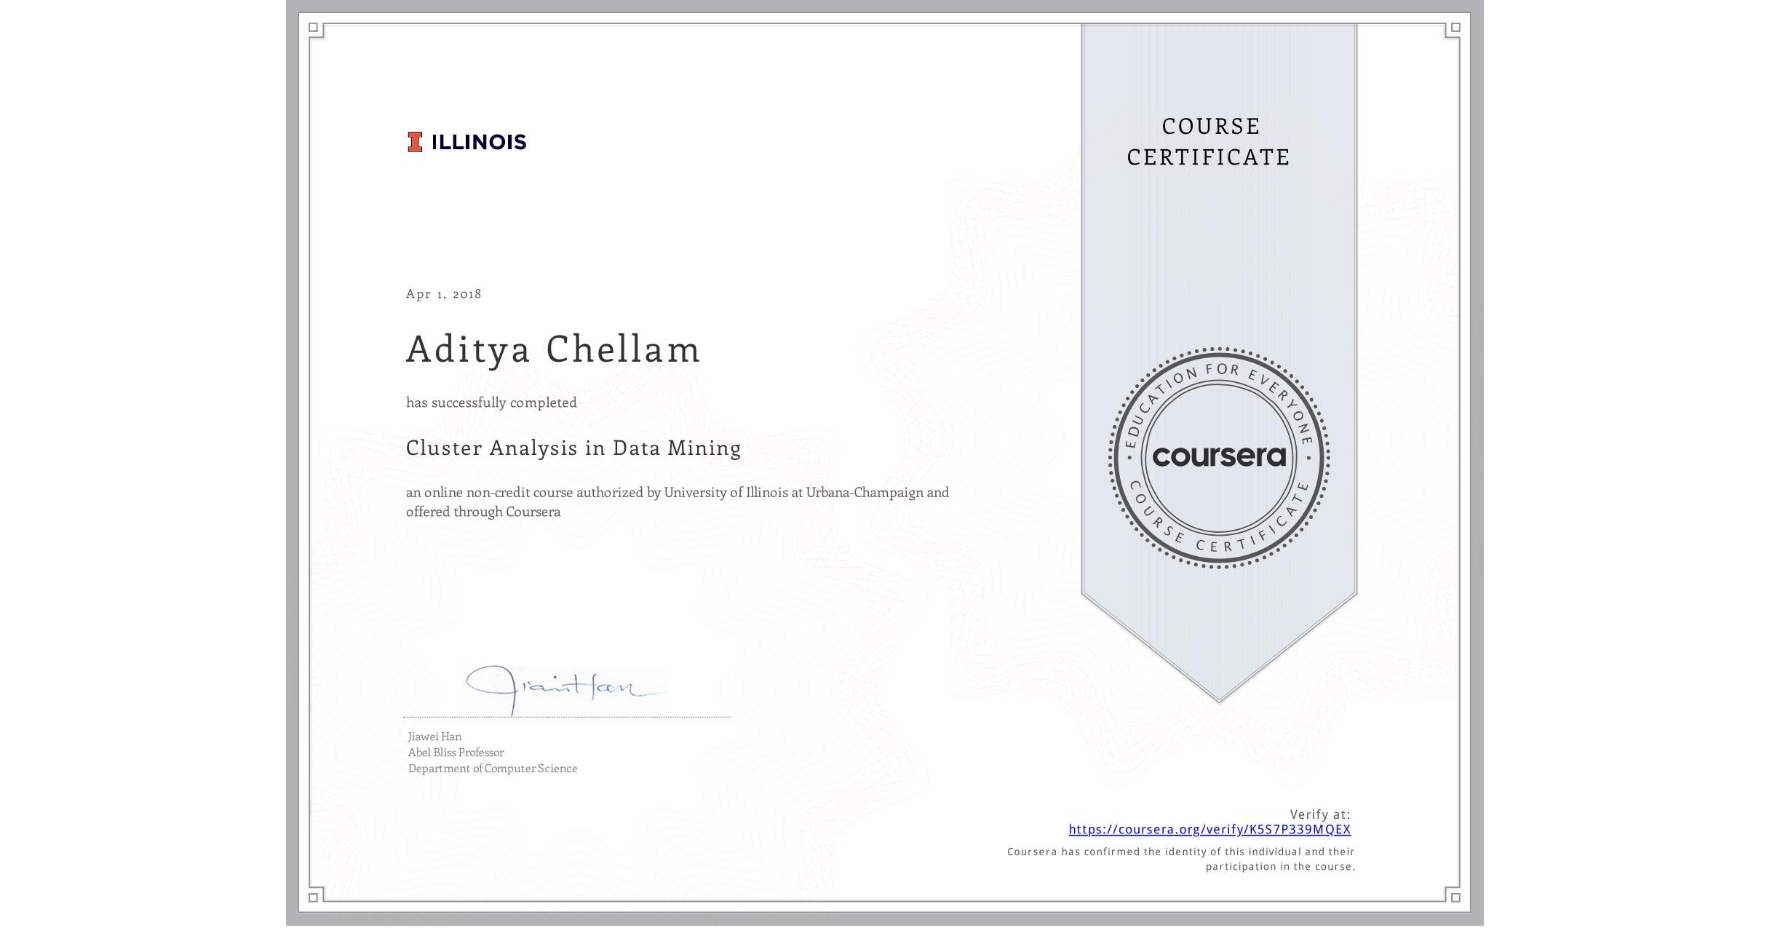 View certificate for Aditya Chellam, Cluster Analysis in Data Mining, an online non-credit course authorized by University of Illinois at Urbana-Champaign and offered through Coursera